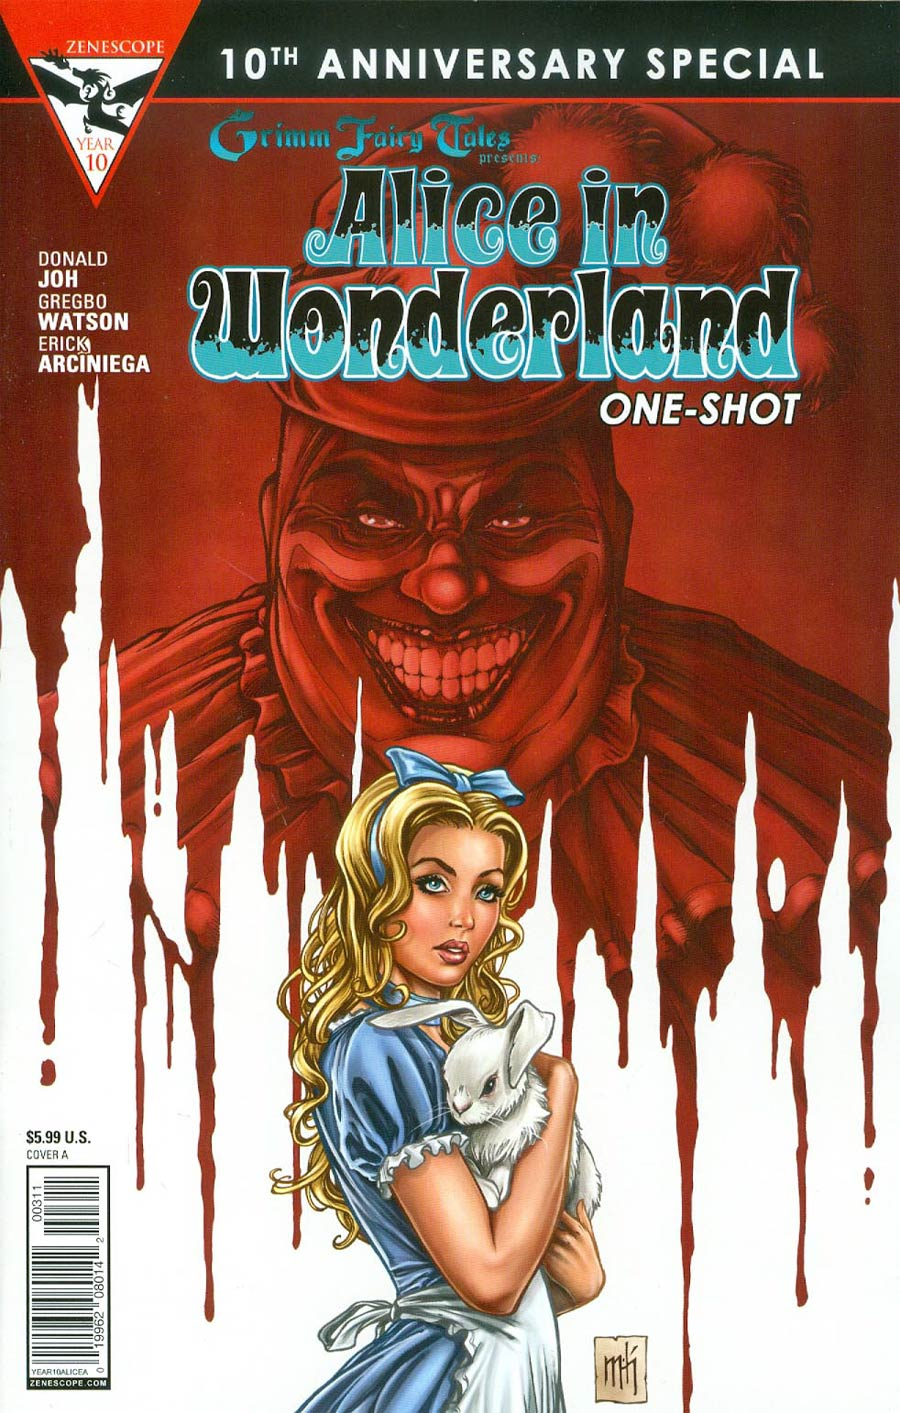 Grimm Fairy Tales Presents 10th Anniversary Special #3 Alice In Wonderland Cover A Mike Krome